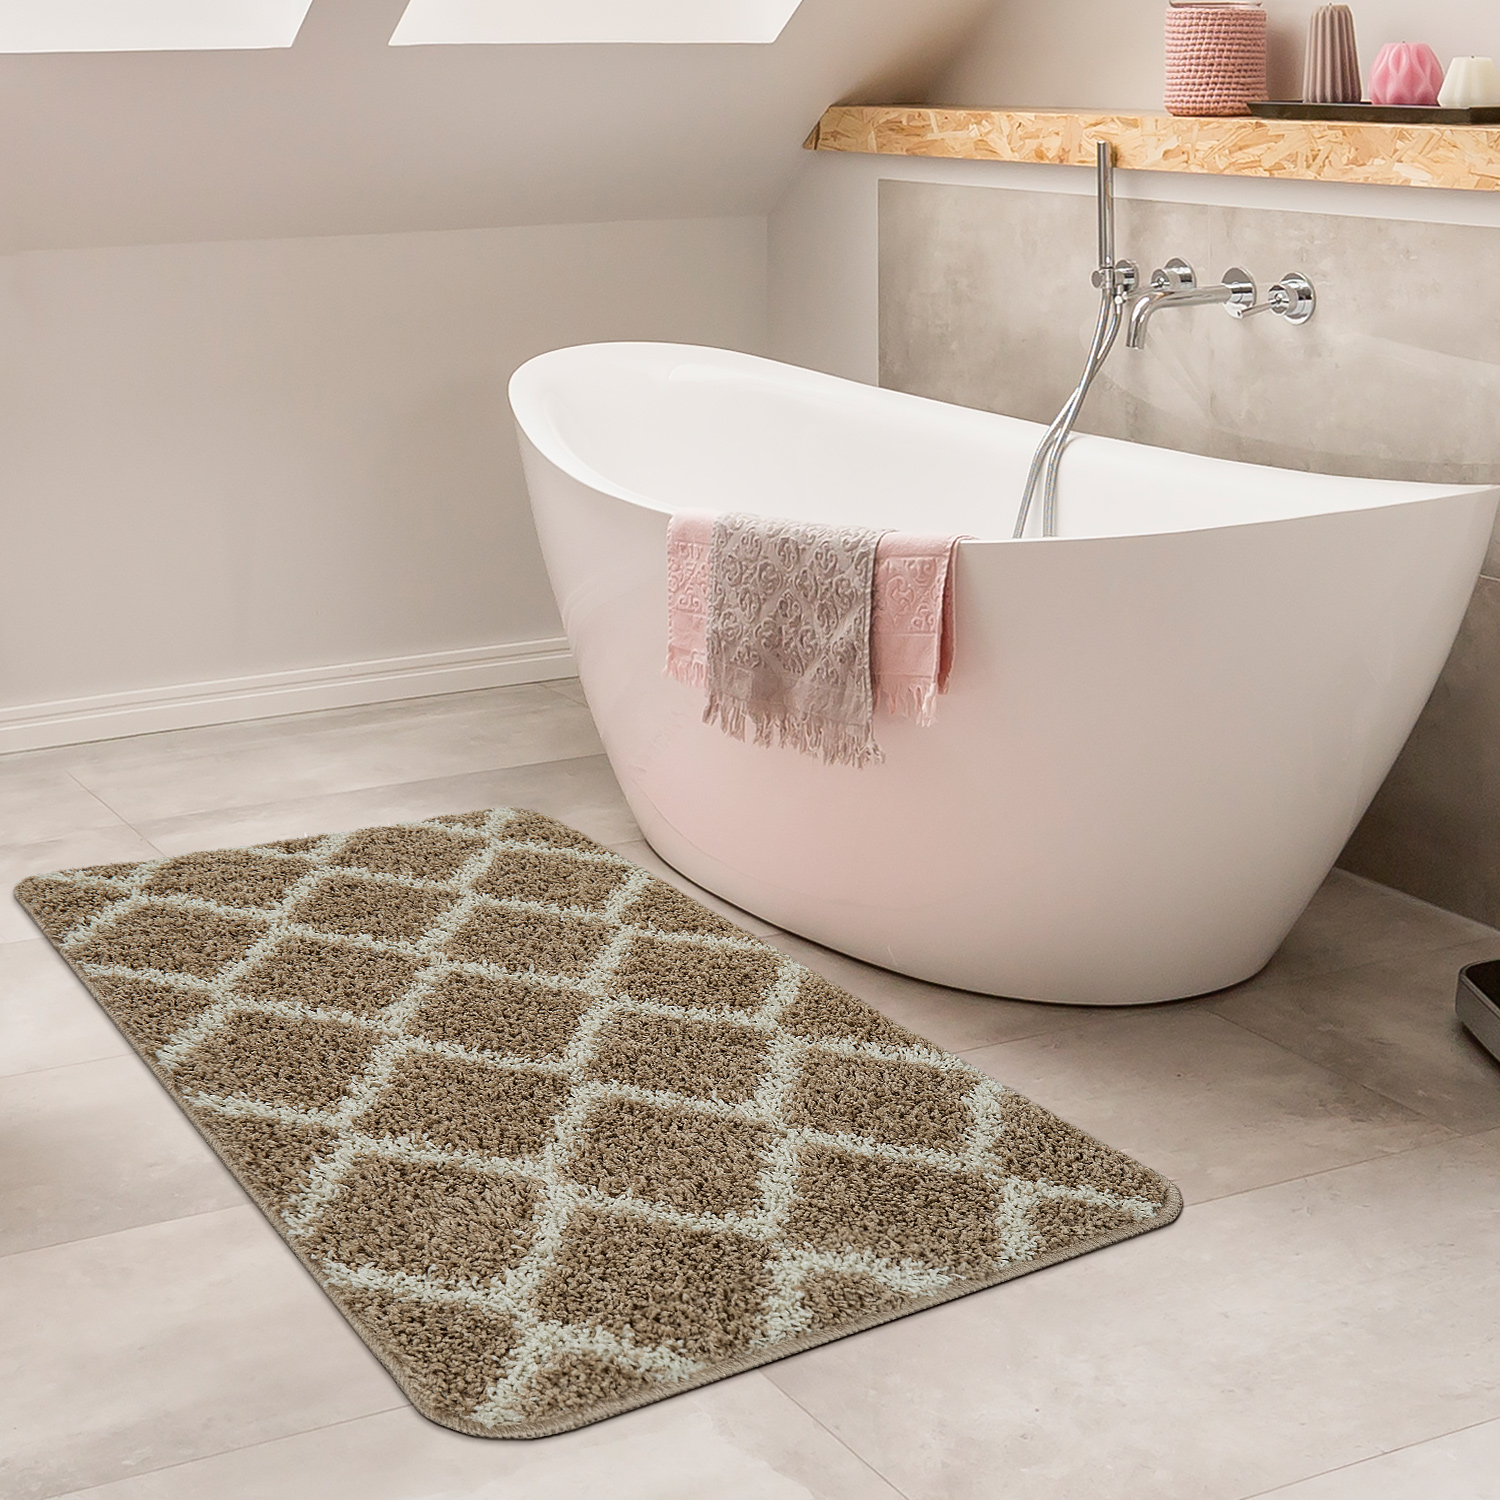 Modern Bathmat With Diamond Design Deep Pile Bathroom Mat In Beige White